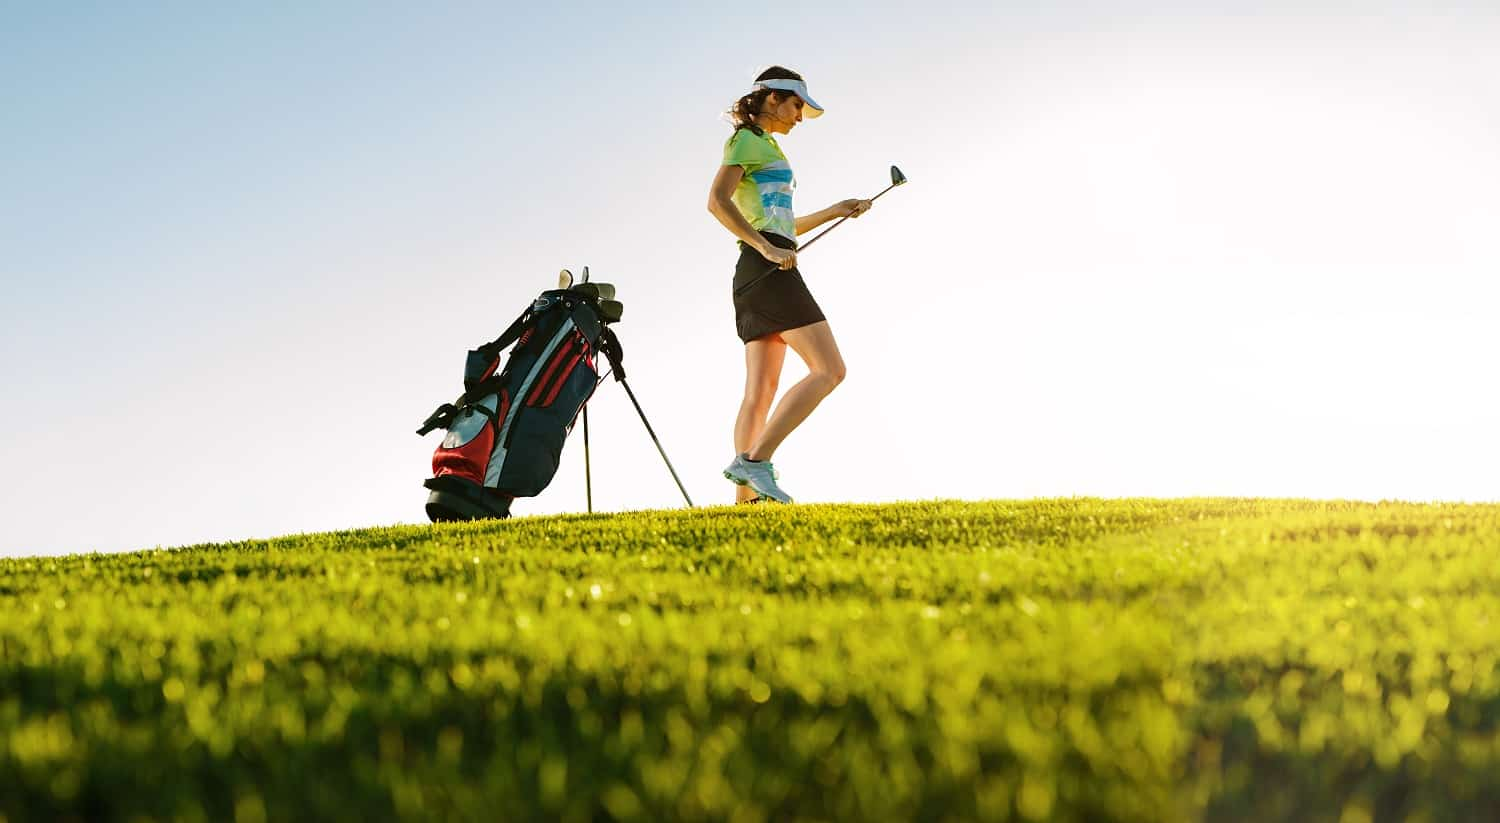 Lessons about boundaries learned from living on the golf course